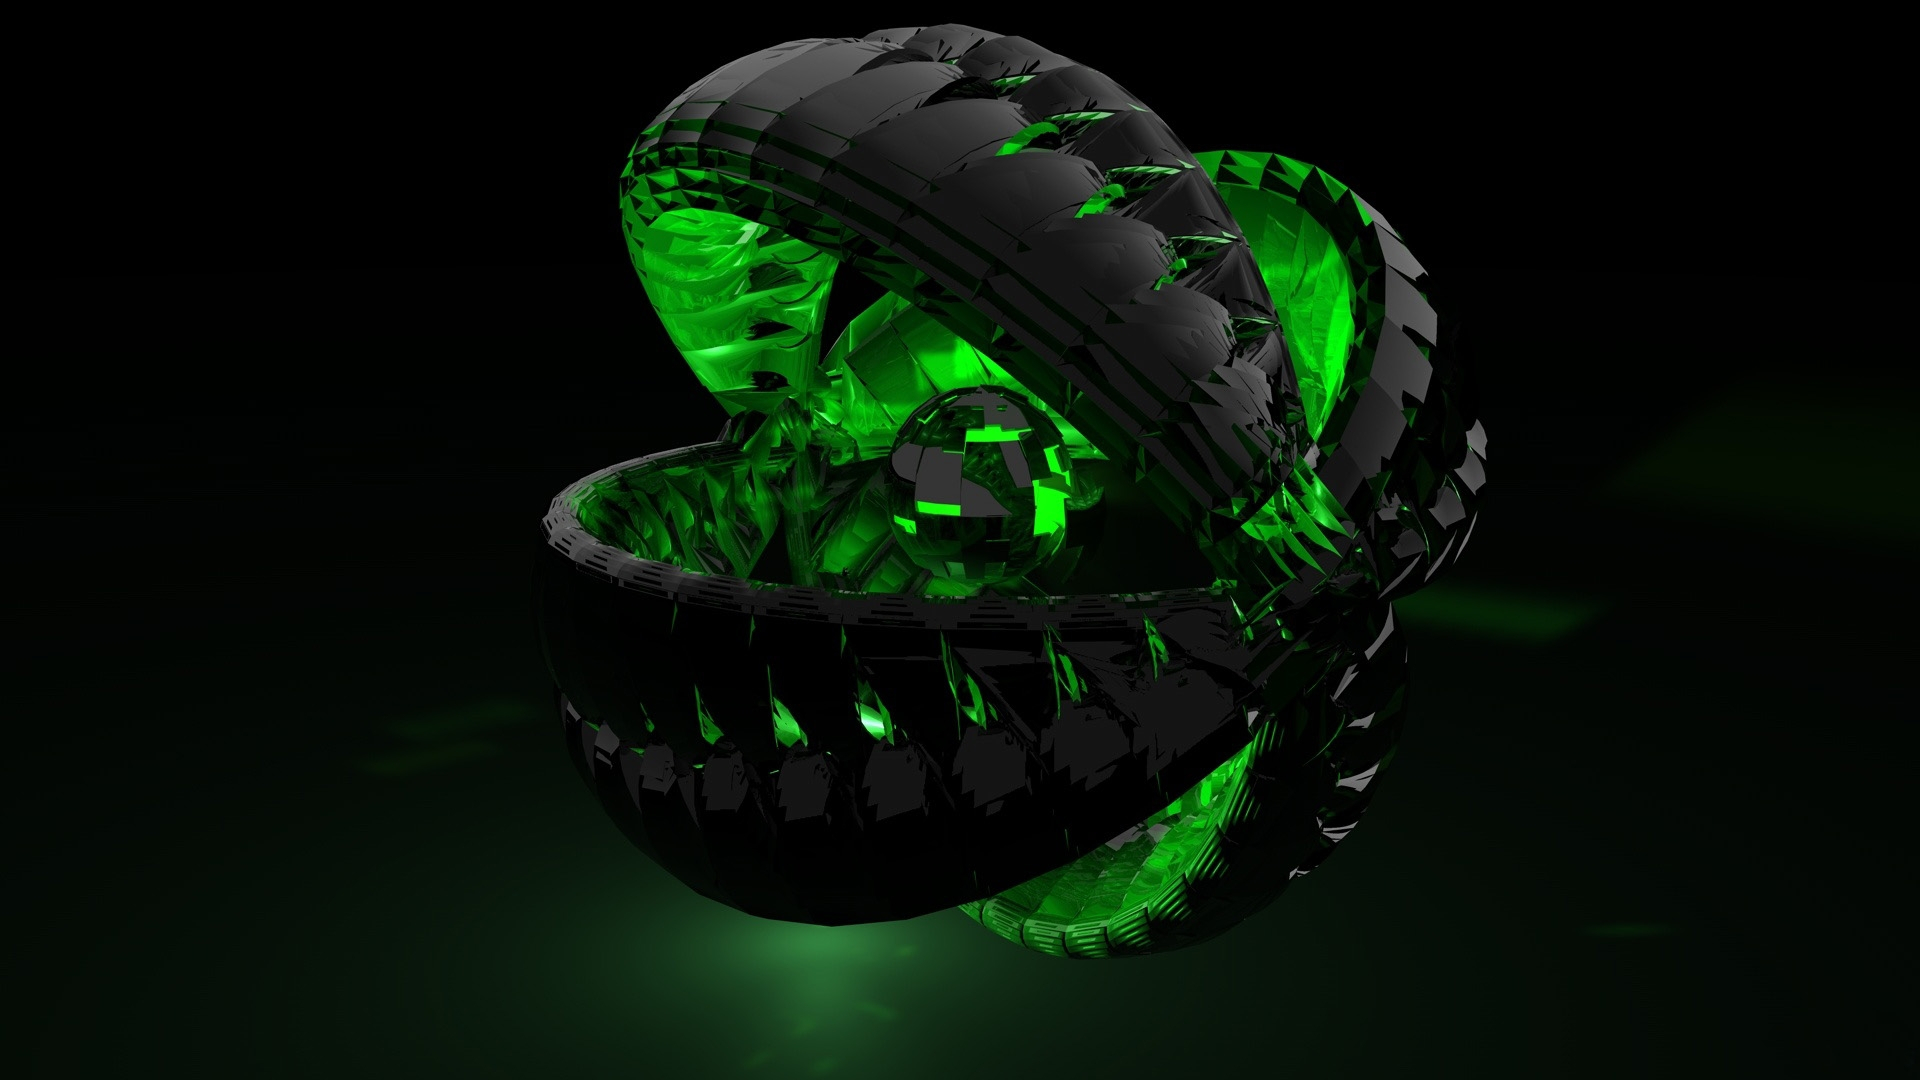 Green Ball 3d Wallpaper